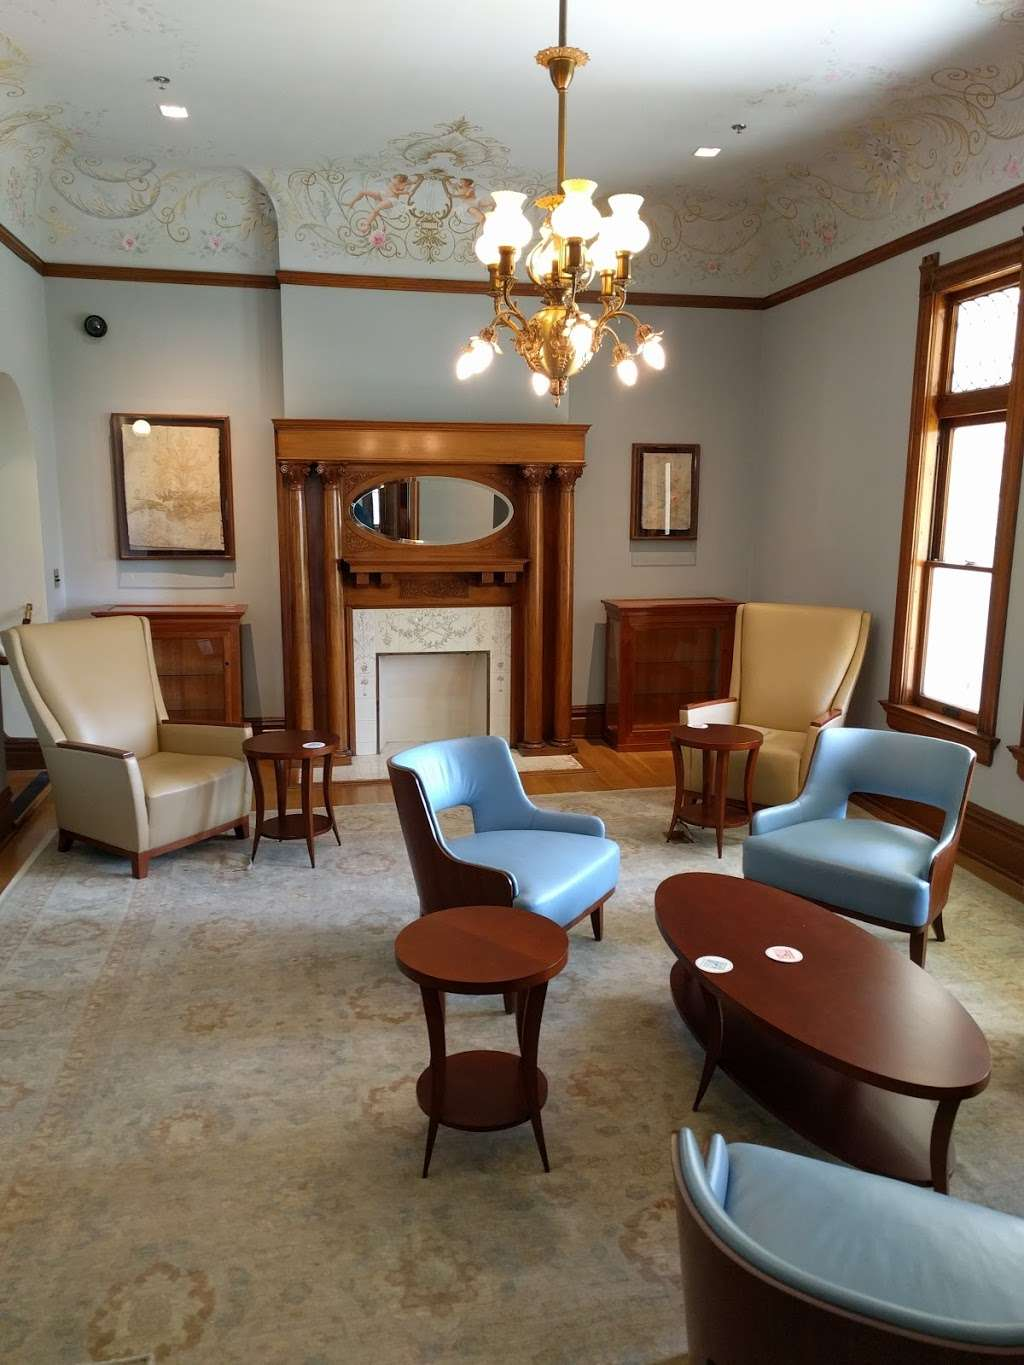 Brand Library & Art Center - library    Photo 1 of 10   Address: 1601 W Mountain St, Glendale, CA 91201, USA   Phone: (818) 548-2051